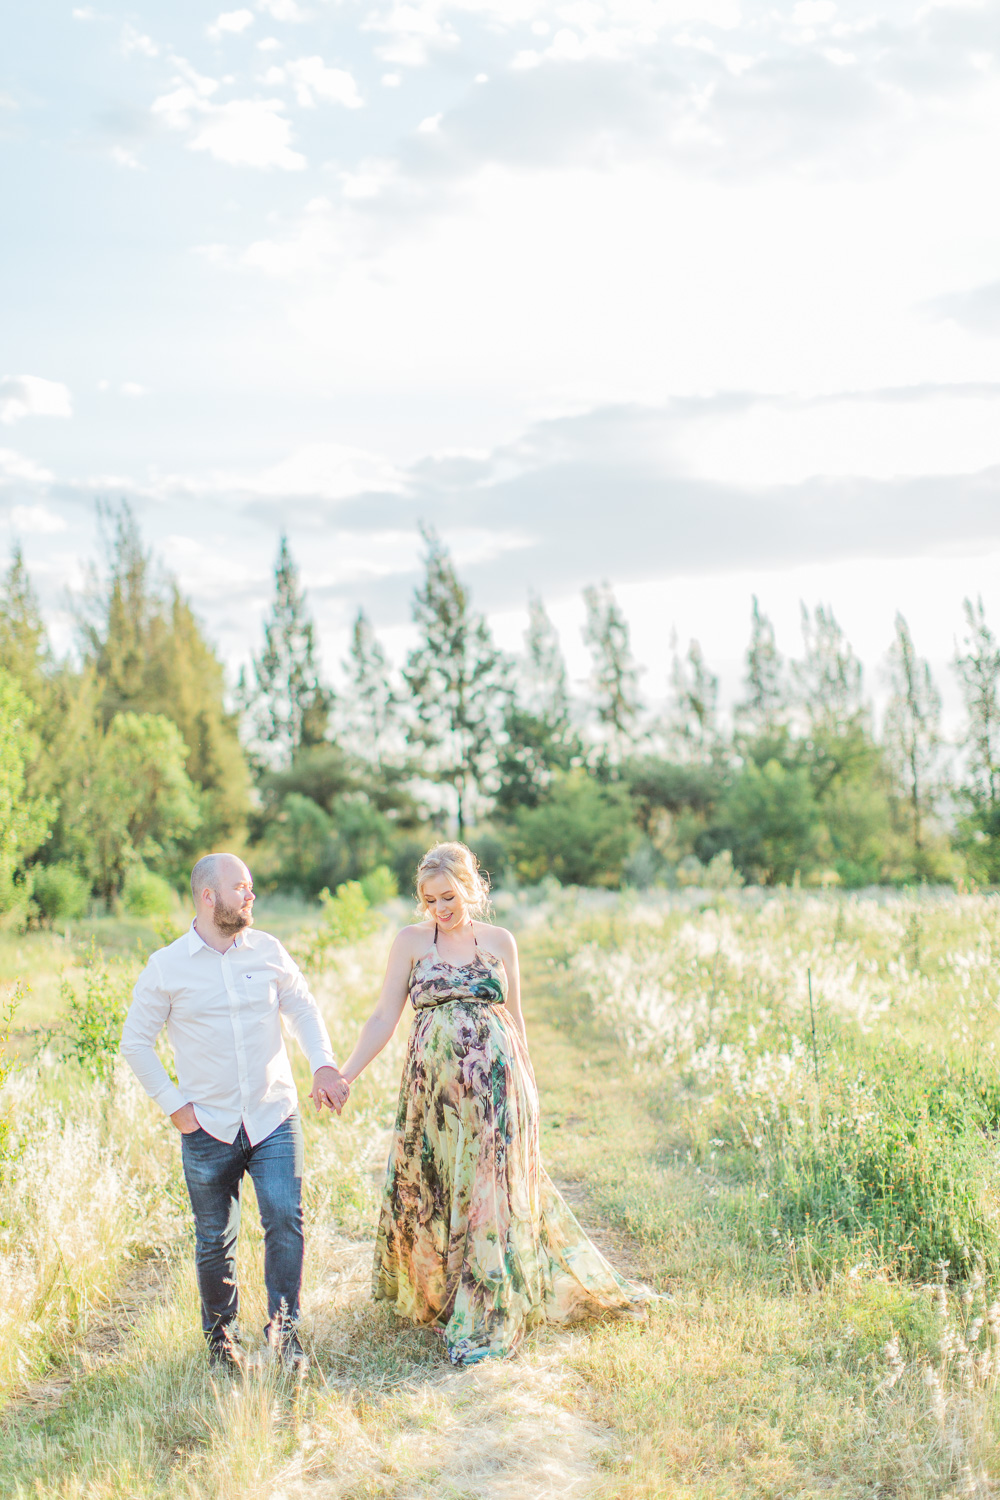 Natural outdoor maternity shoot